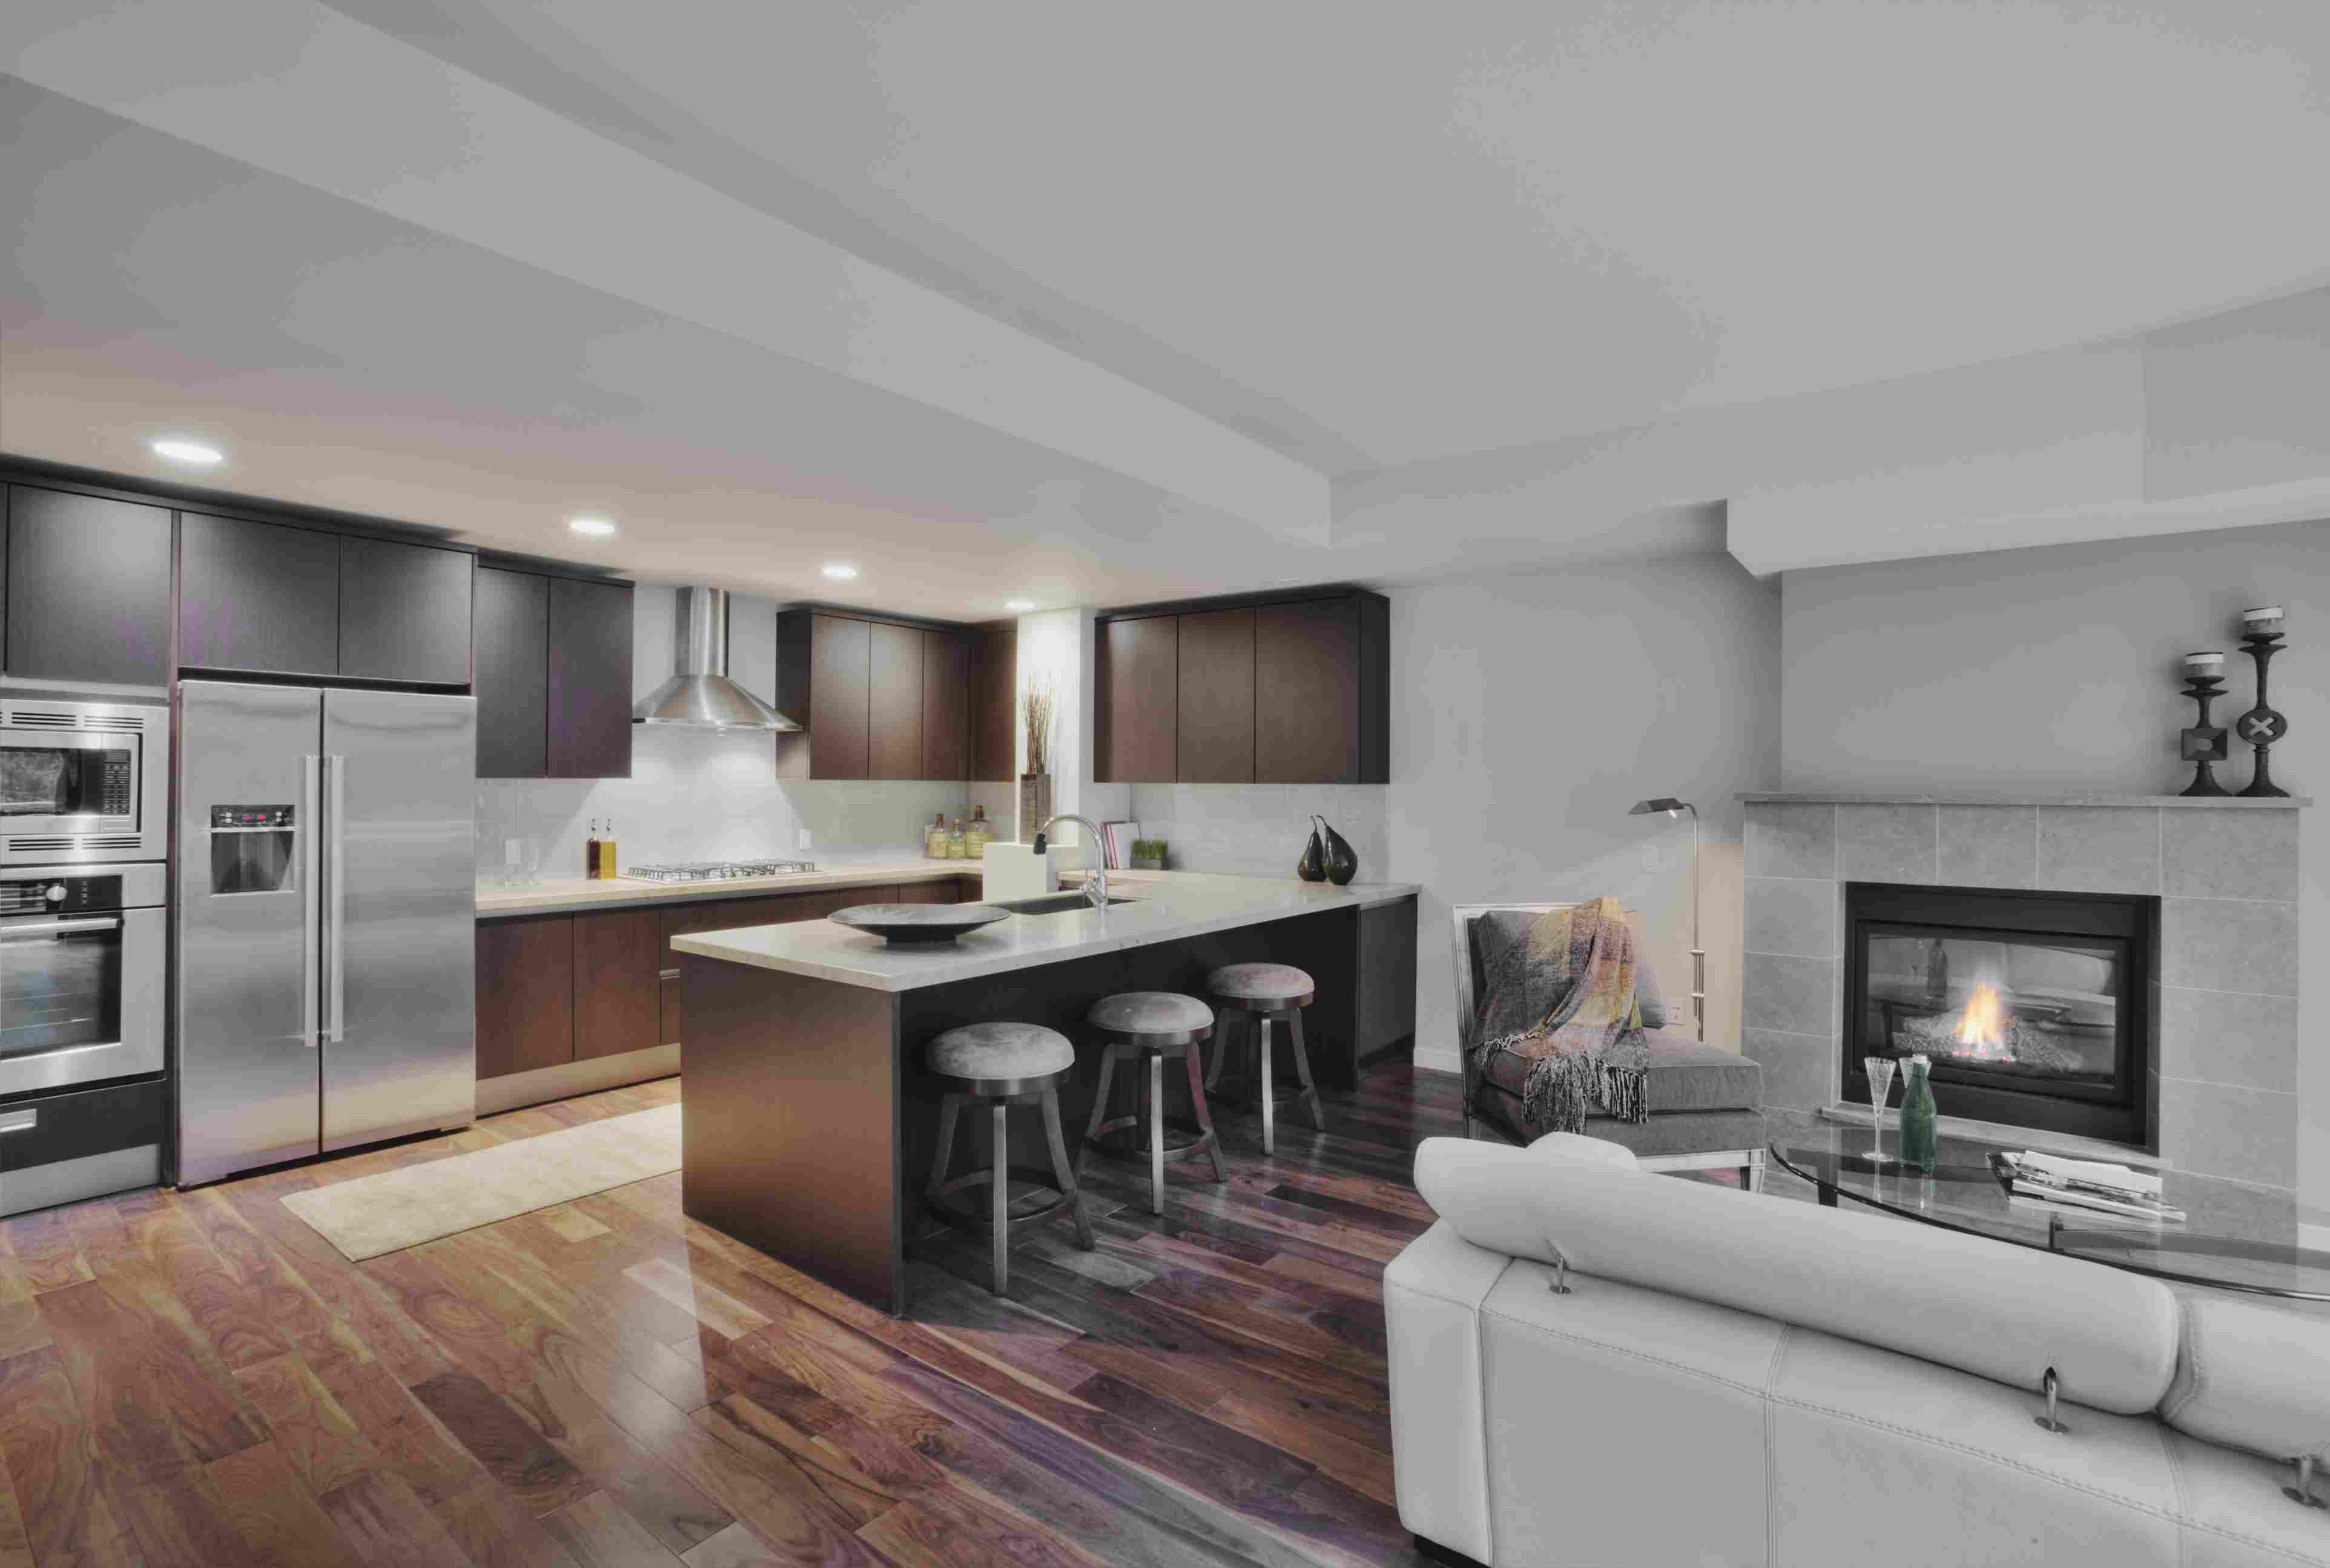 hardwood floors with wood trim of gorgeous kitchens with wooden flooring within open plan kitchen with wood floor 188074734 spaces images 56a4a1673df78cf77283536c